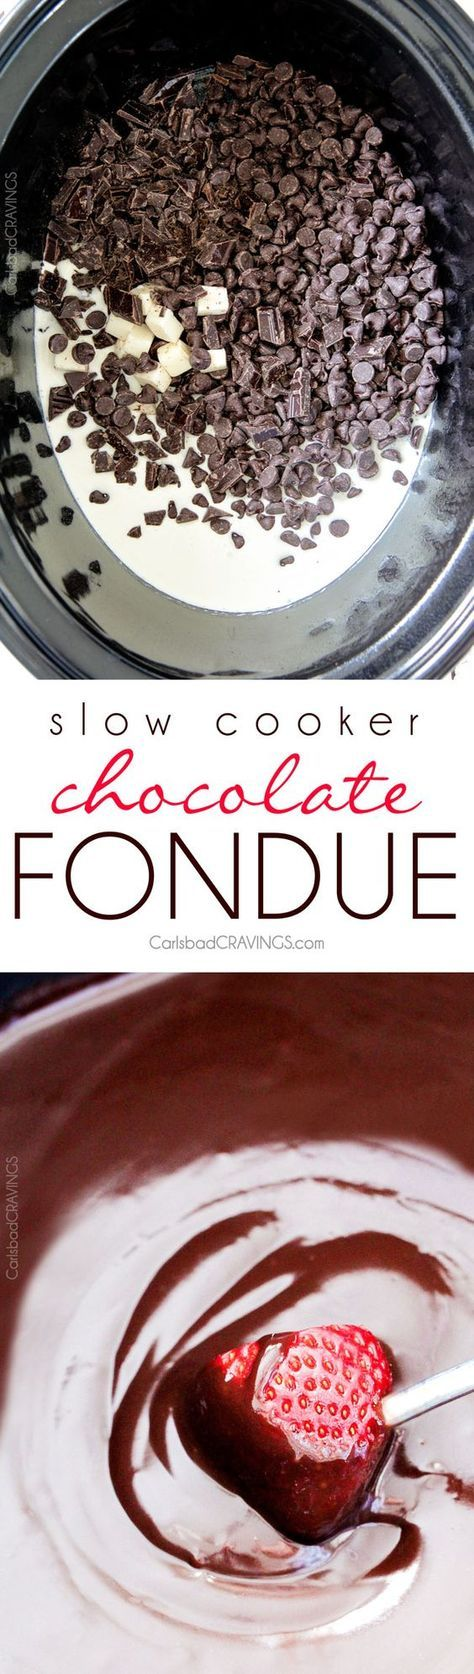 Slow Cooker Chocolate Fondue - EASY, velvety chocolate is the perfect make ahead party or special occasion appetizer or dessert. Perfect for Valentine's Day, baby/bridal showers, girls night, movie night or just because! #brothfonduerecipes